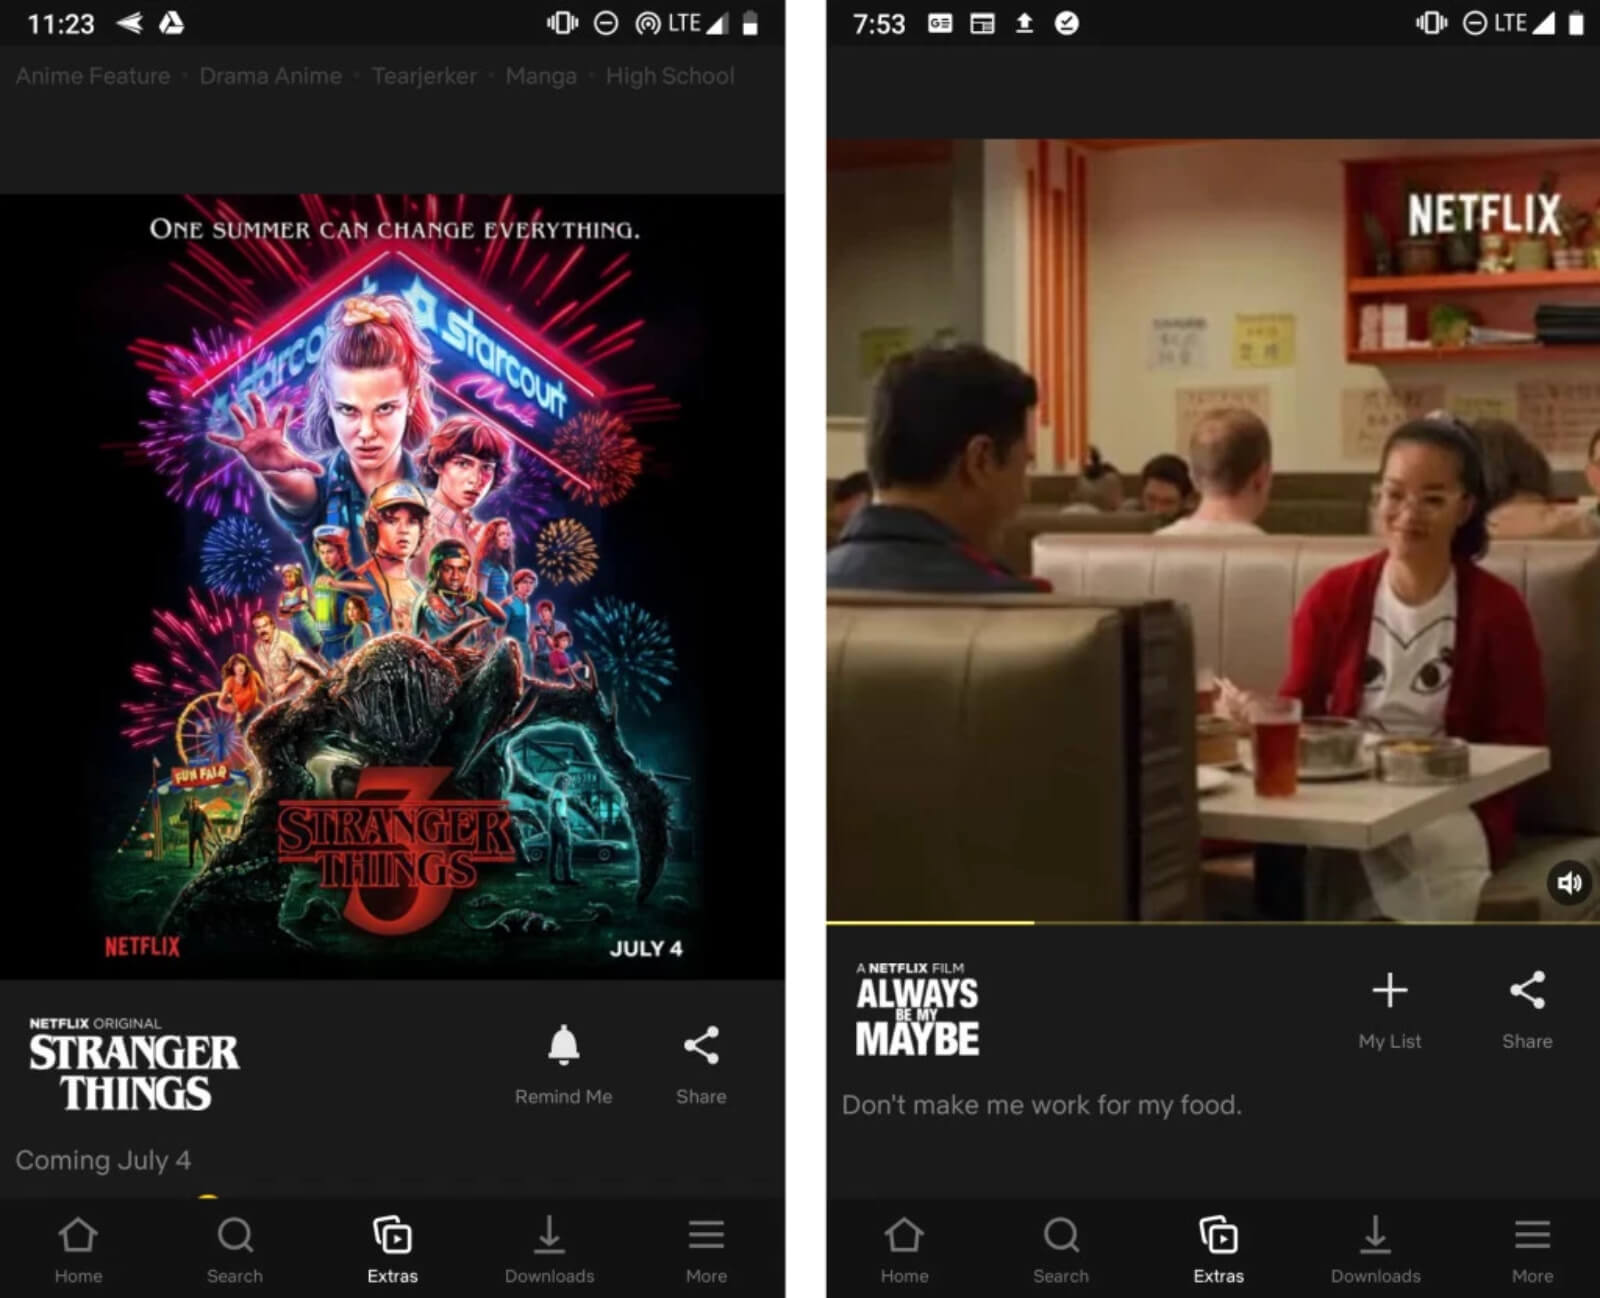 Netflix is testing Extras, an Instagram-style scrolling feed for its mobile app